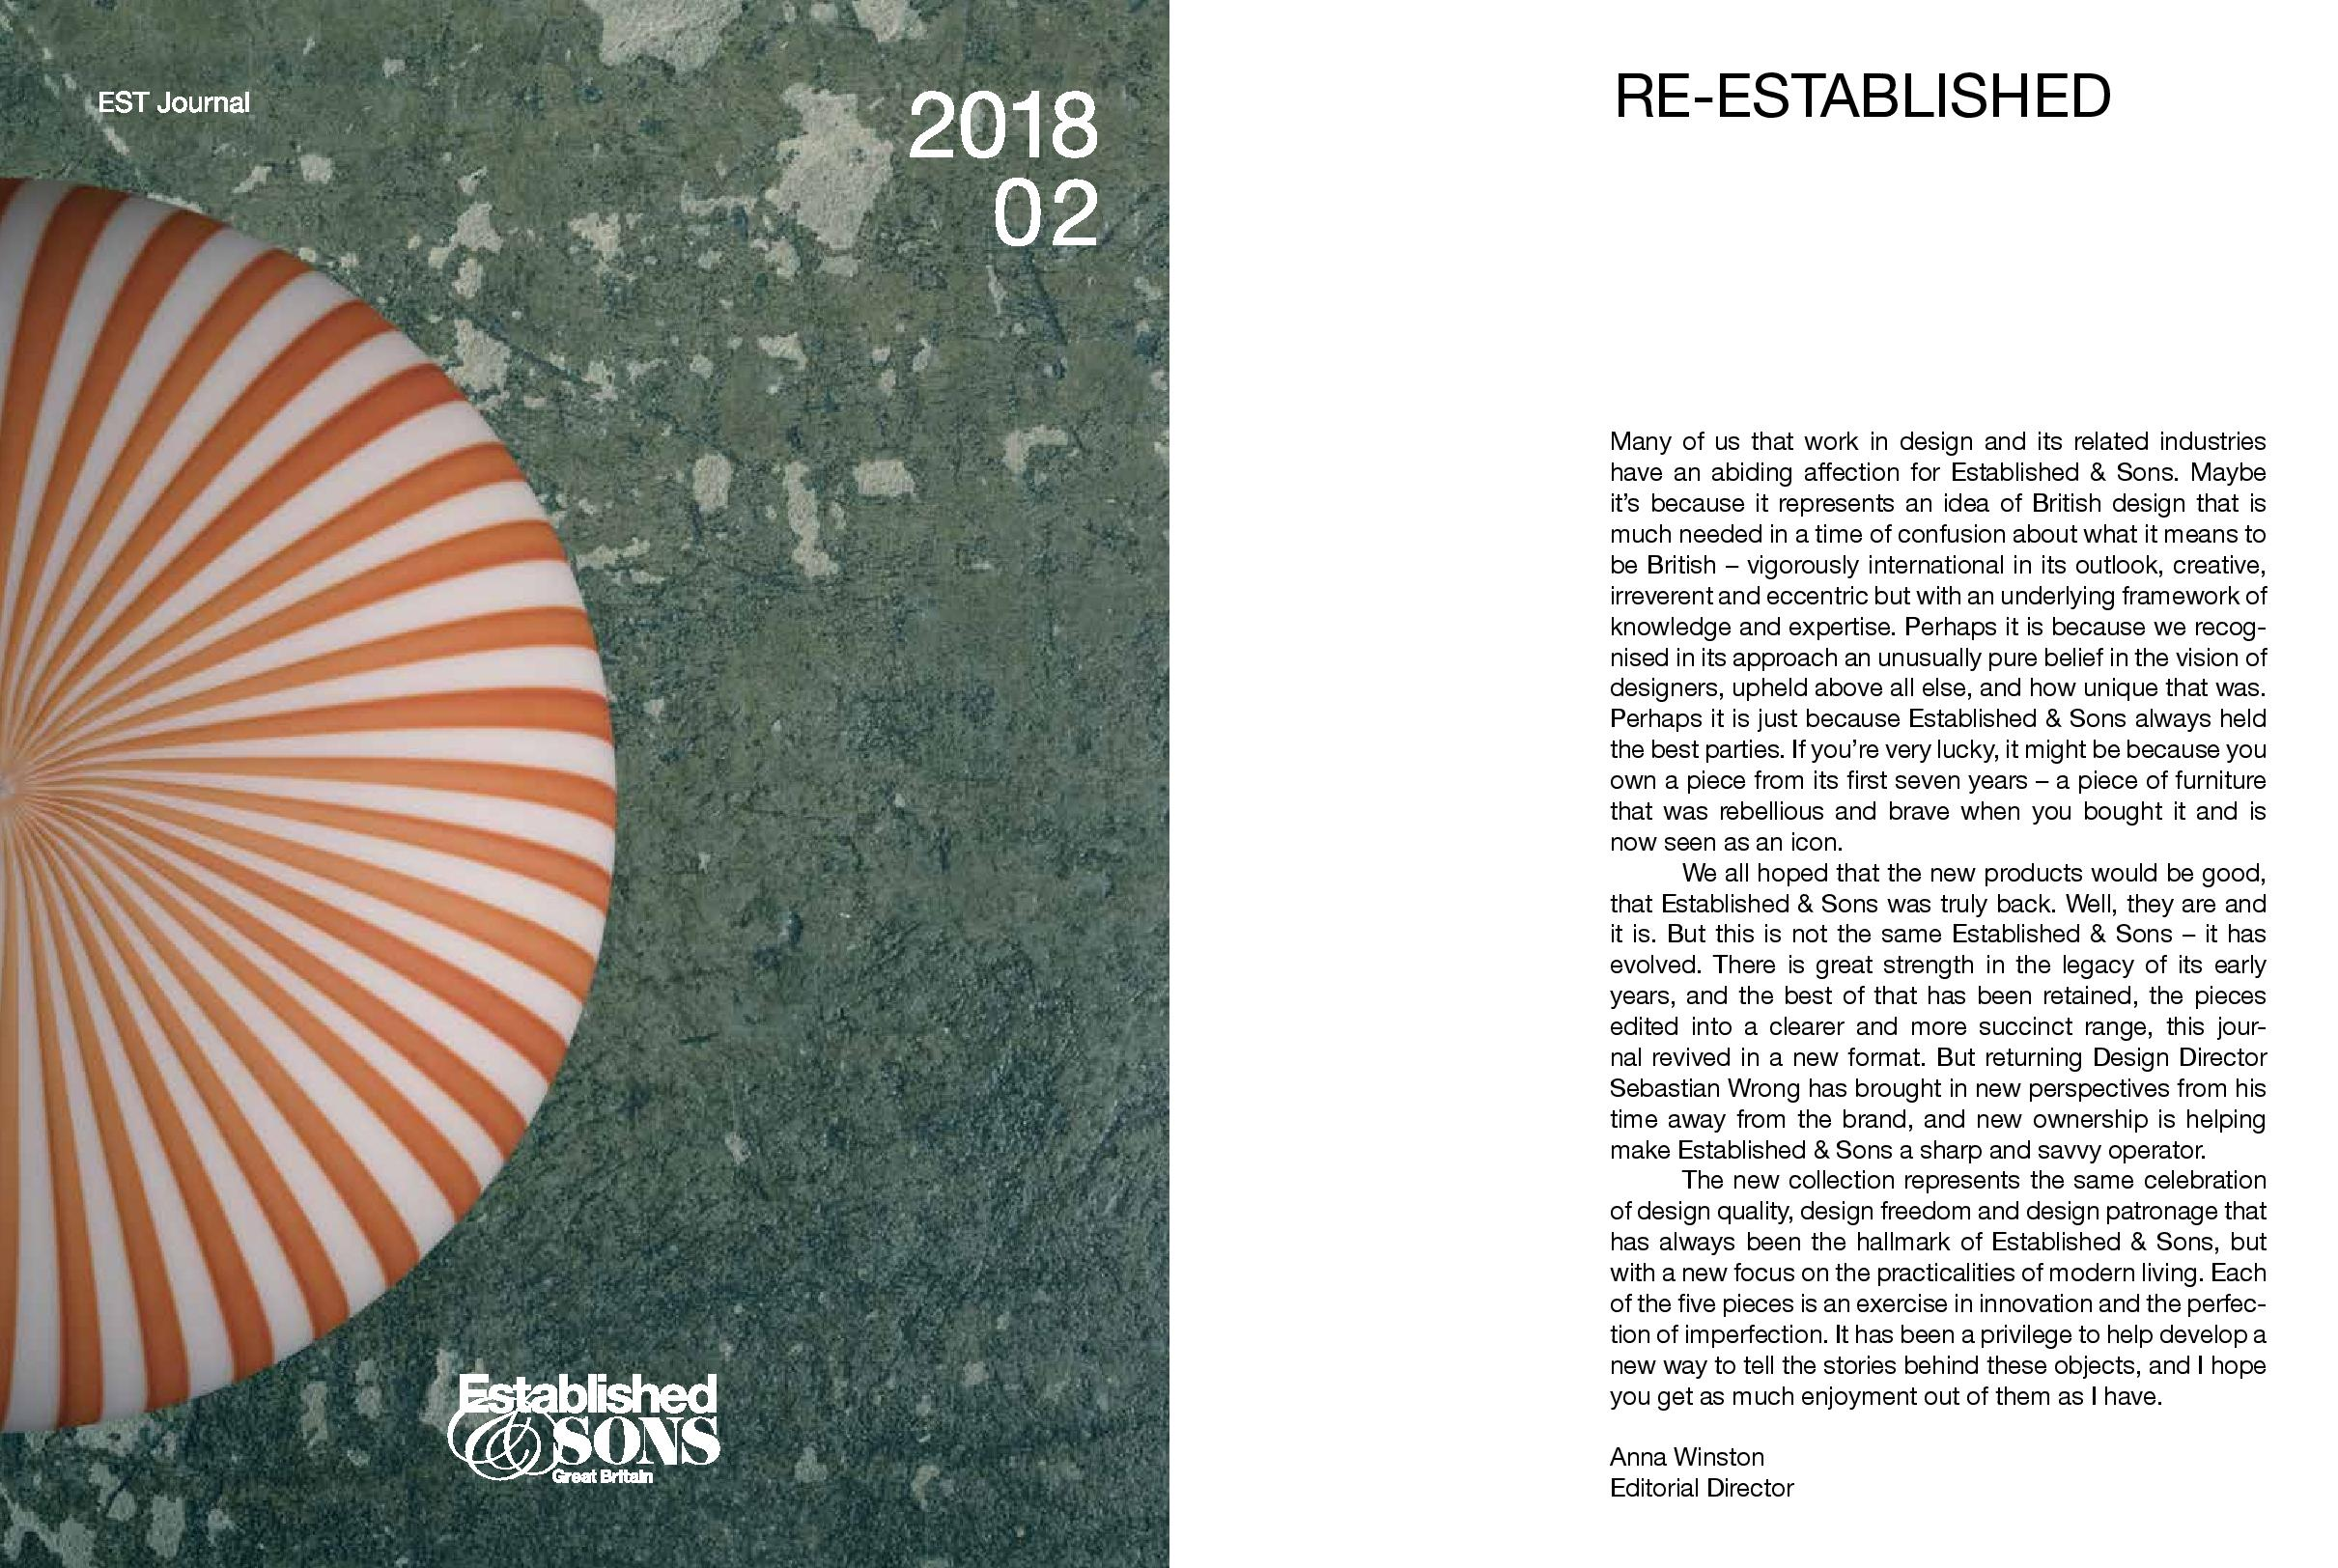 EstablishedandSons_EST-Journal_©2018_All-Rights-Reserved (1)-page-001.jpg